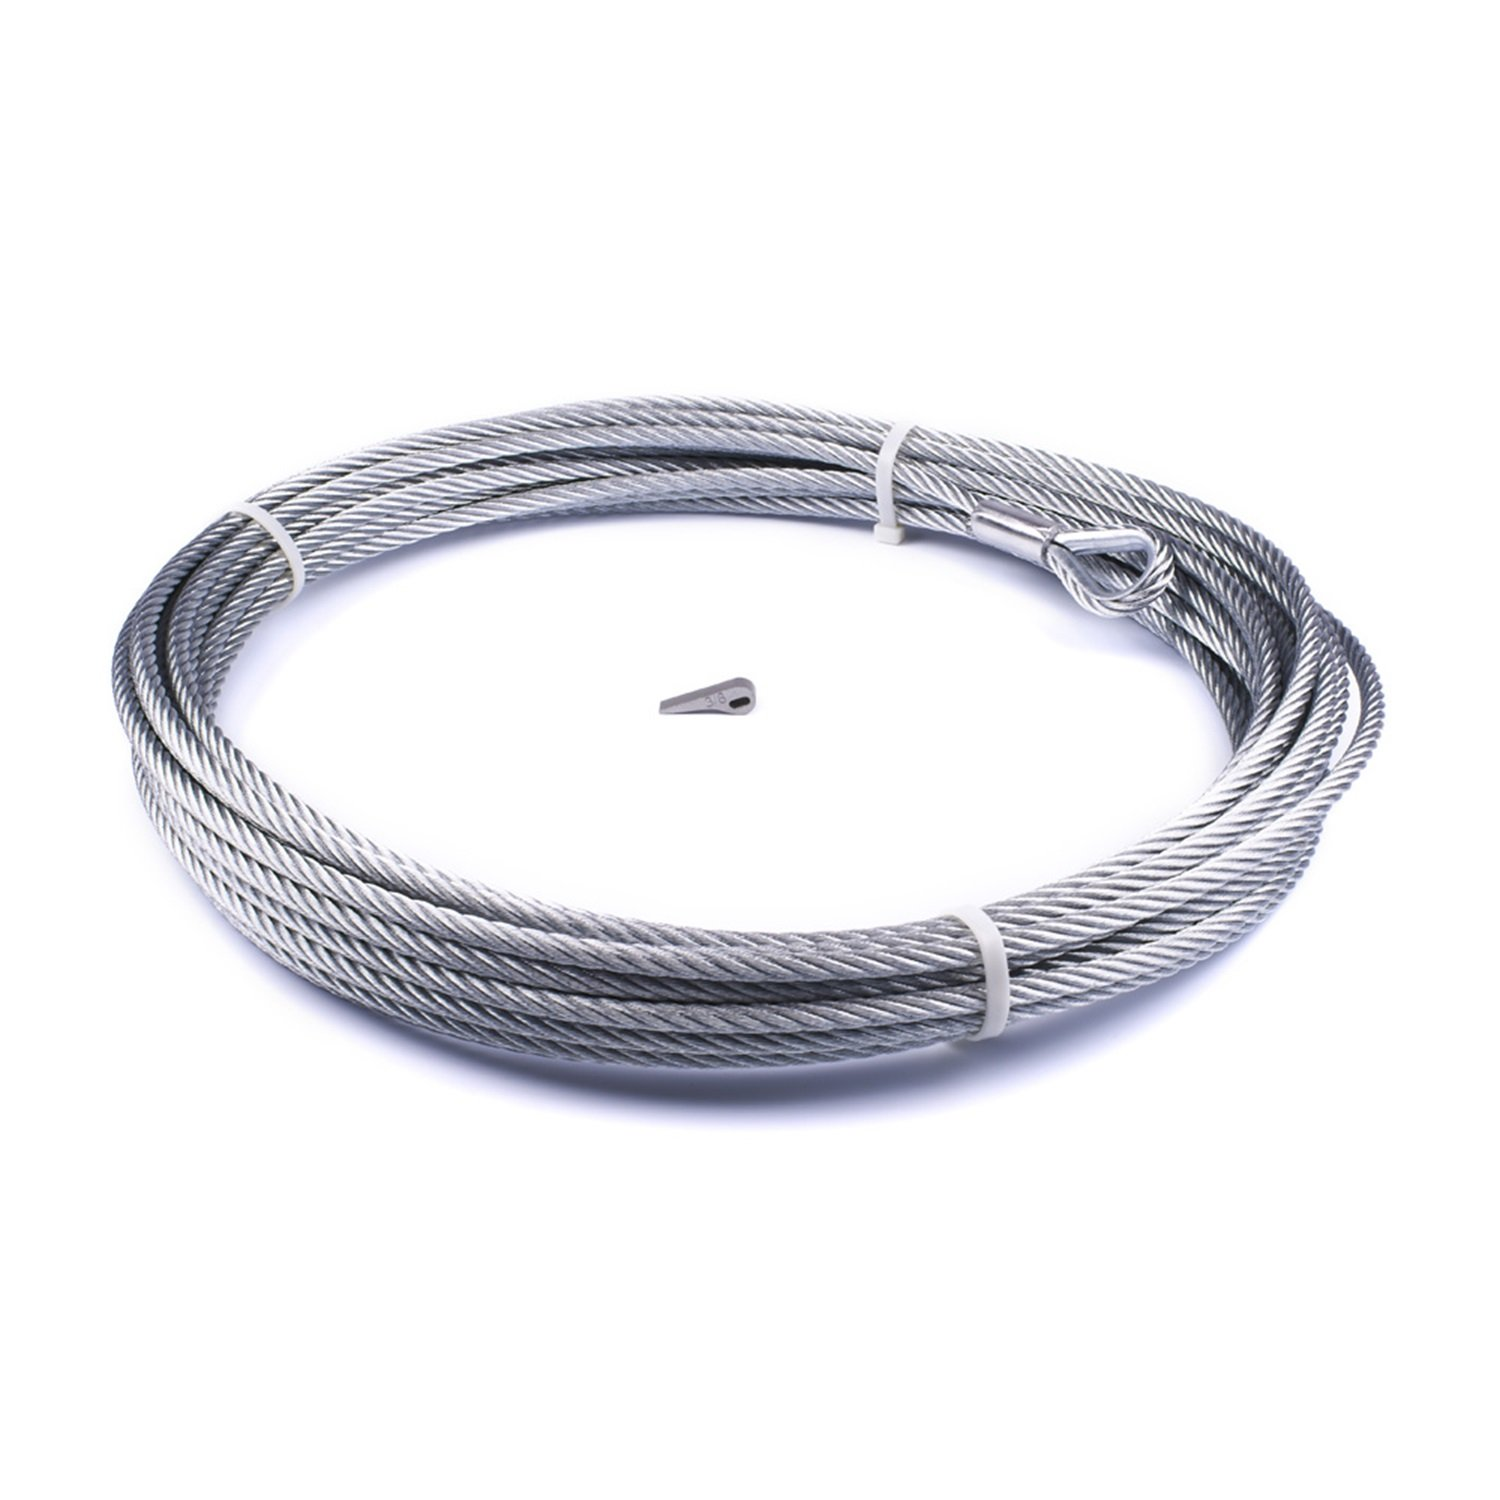 x 80 ft For Winch Models Zeon 10 Zeon 12 Wire Rope Warn 89213 Wire Rope 3//8 in